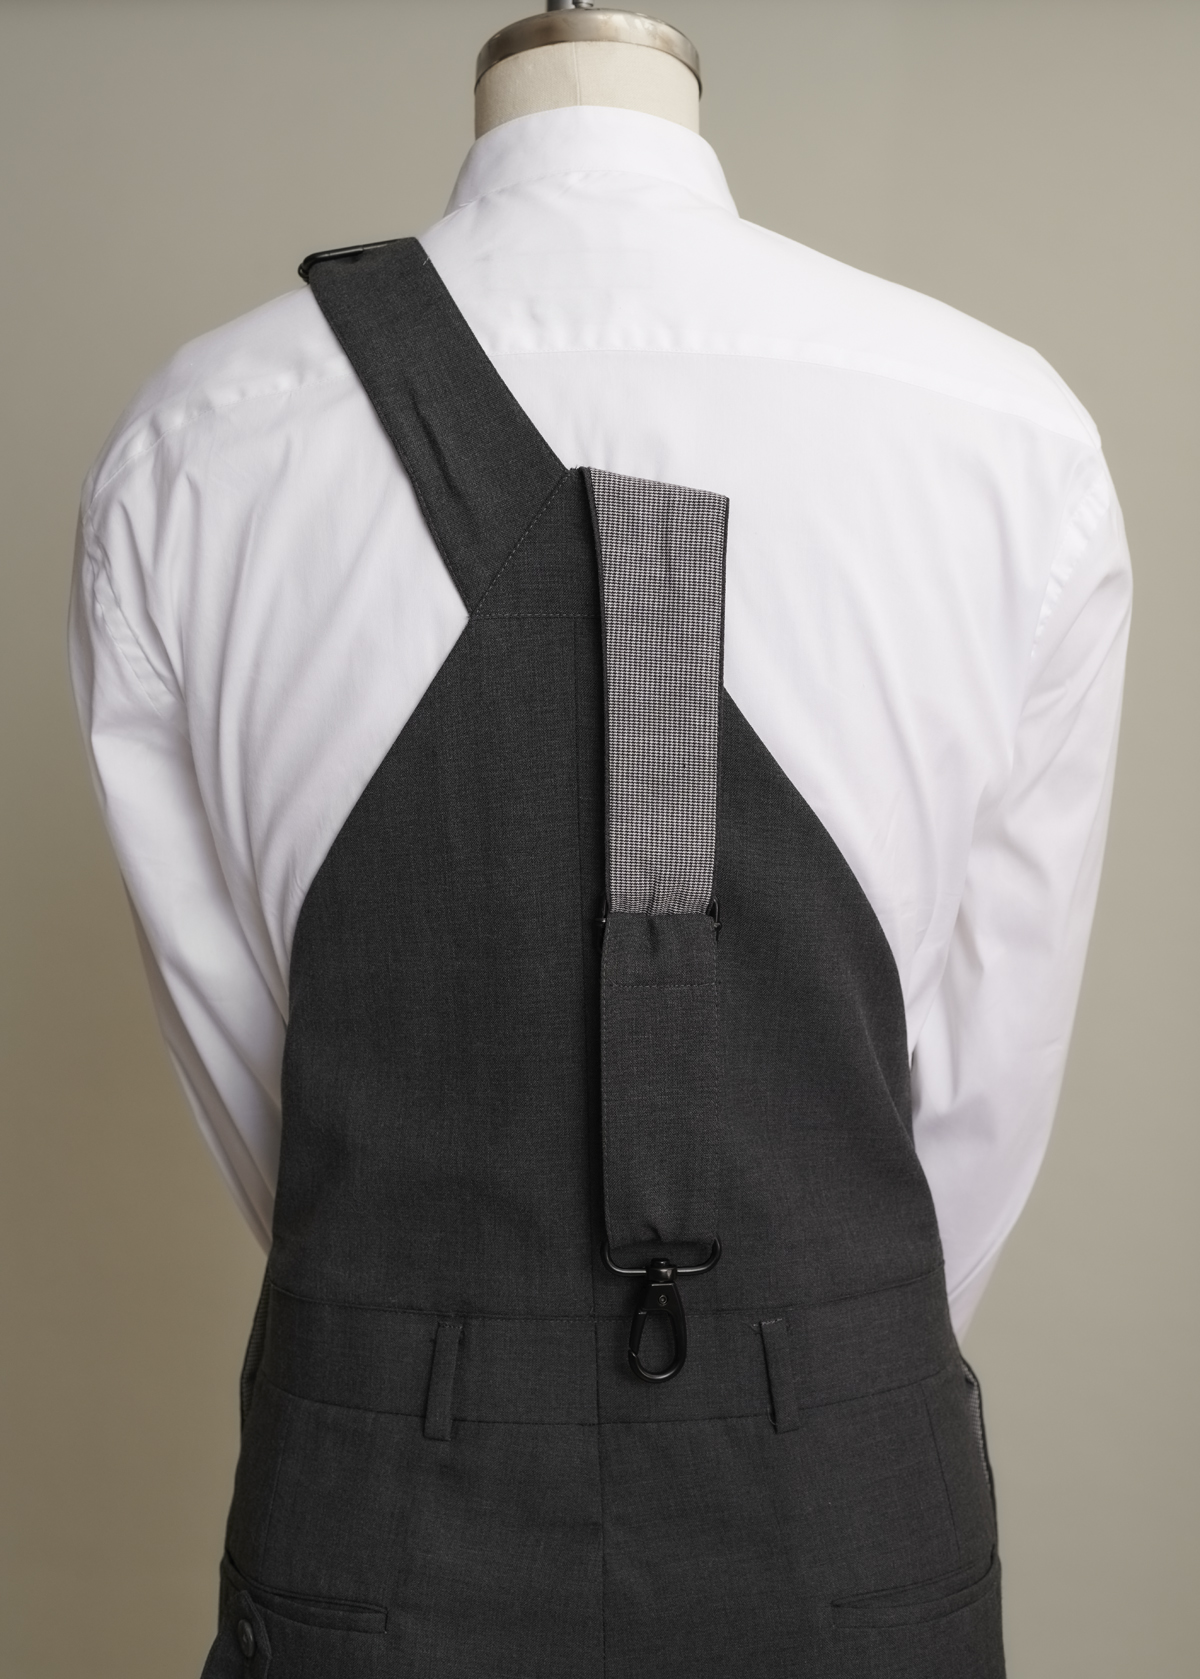 Finished back of overalls with one strap undone